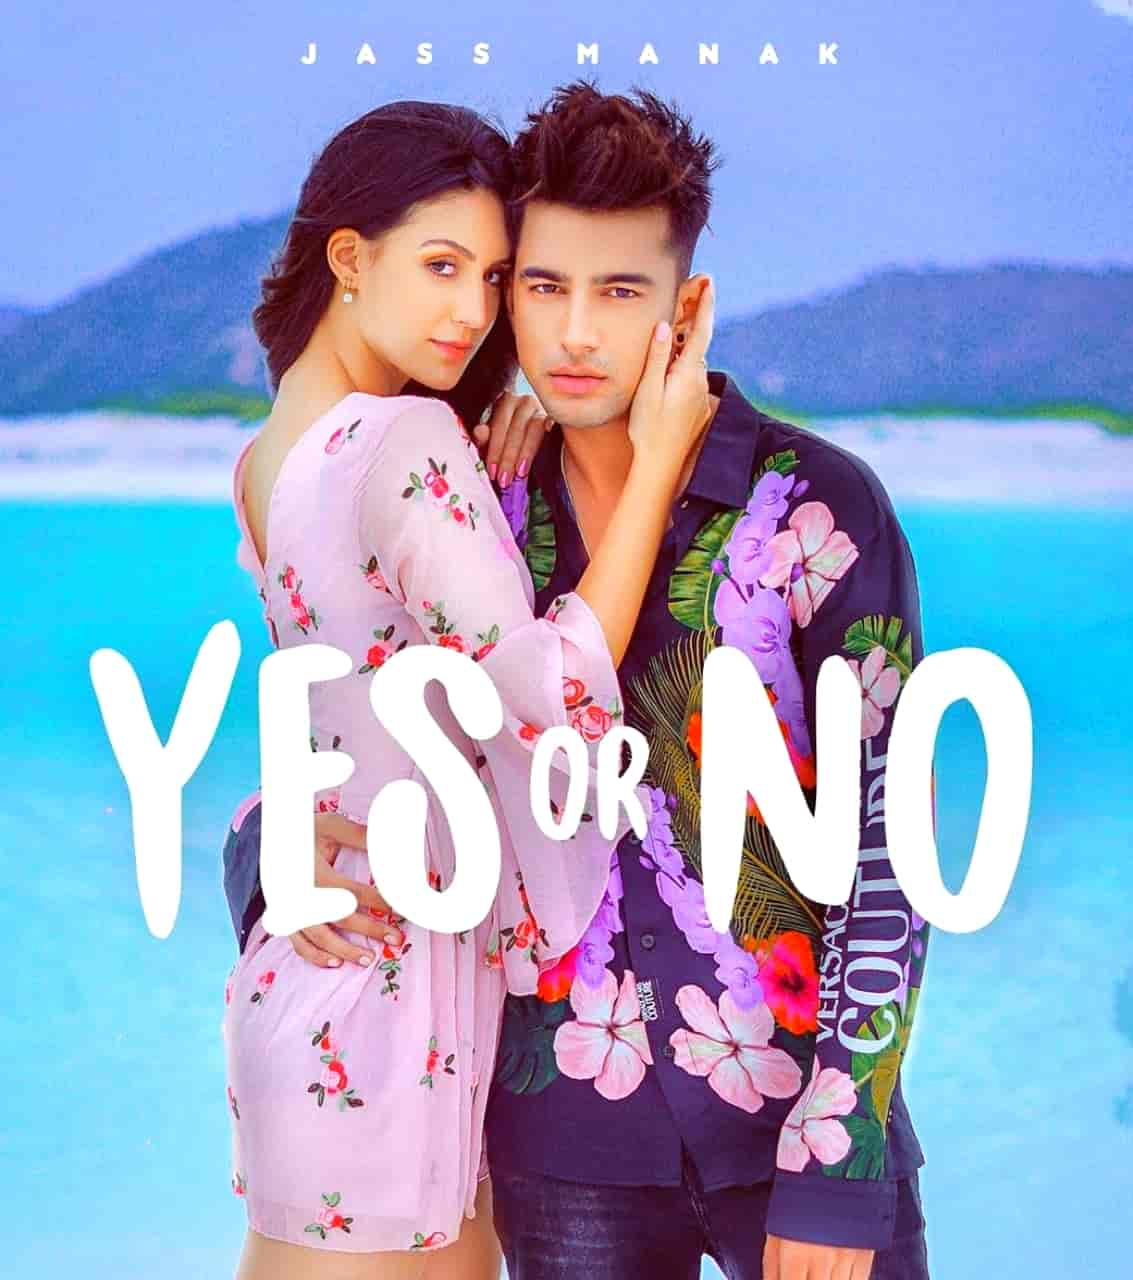 Yes Or No Punjabi Song Image By Jass Manak